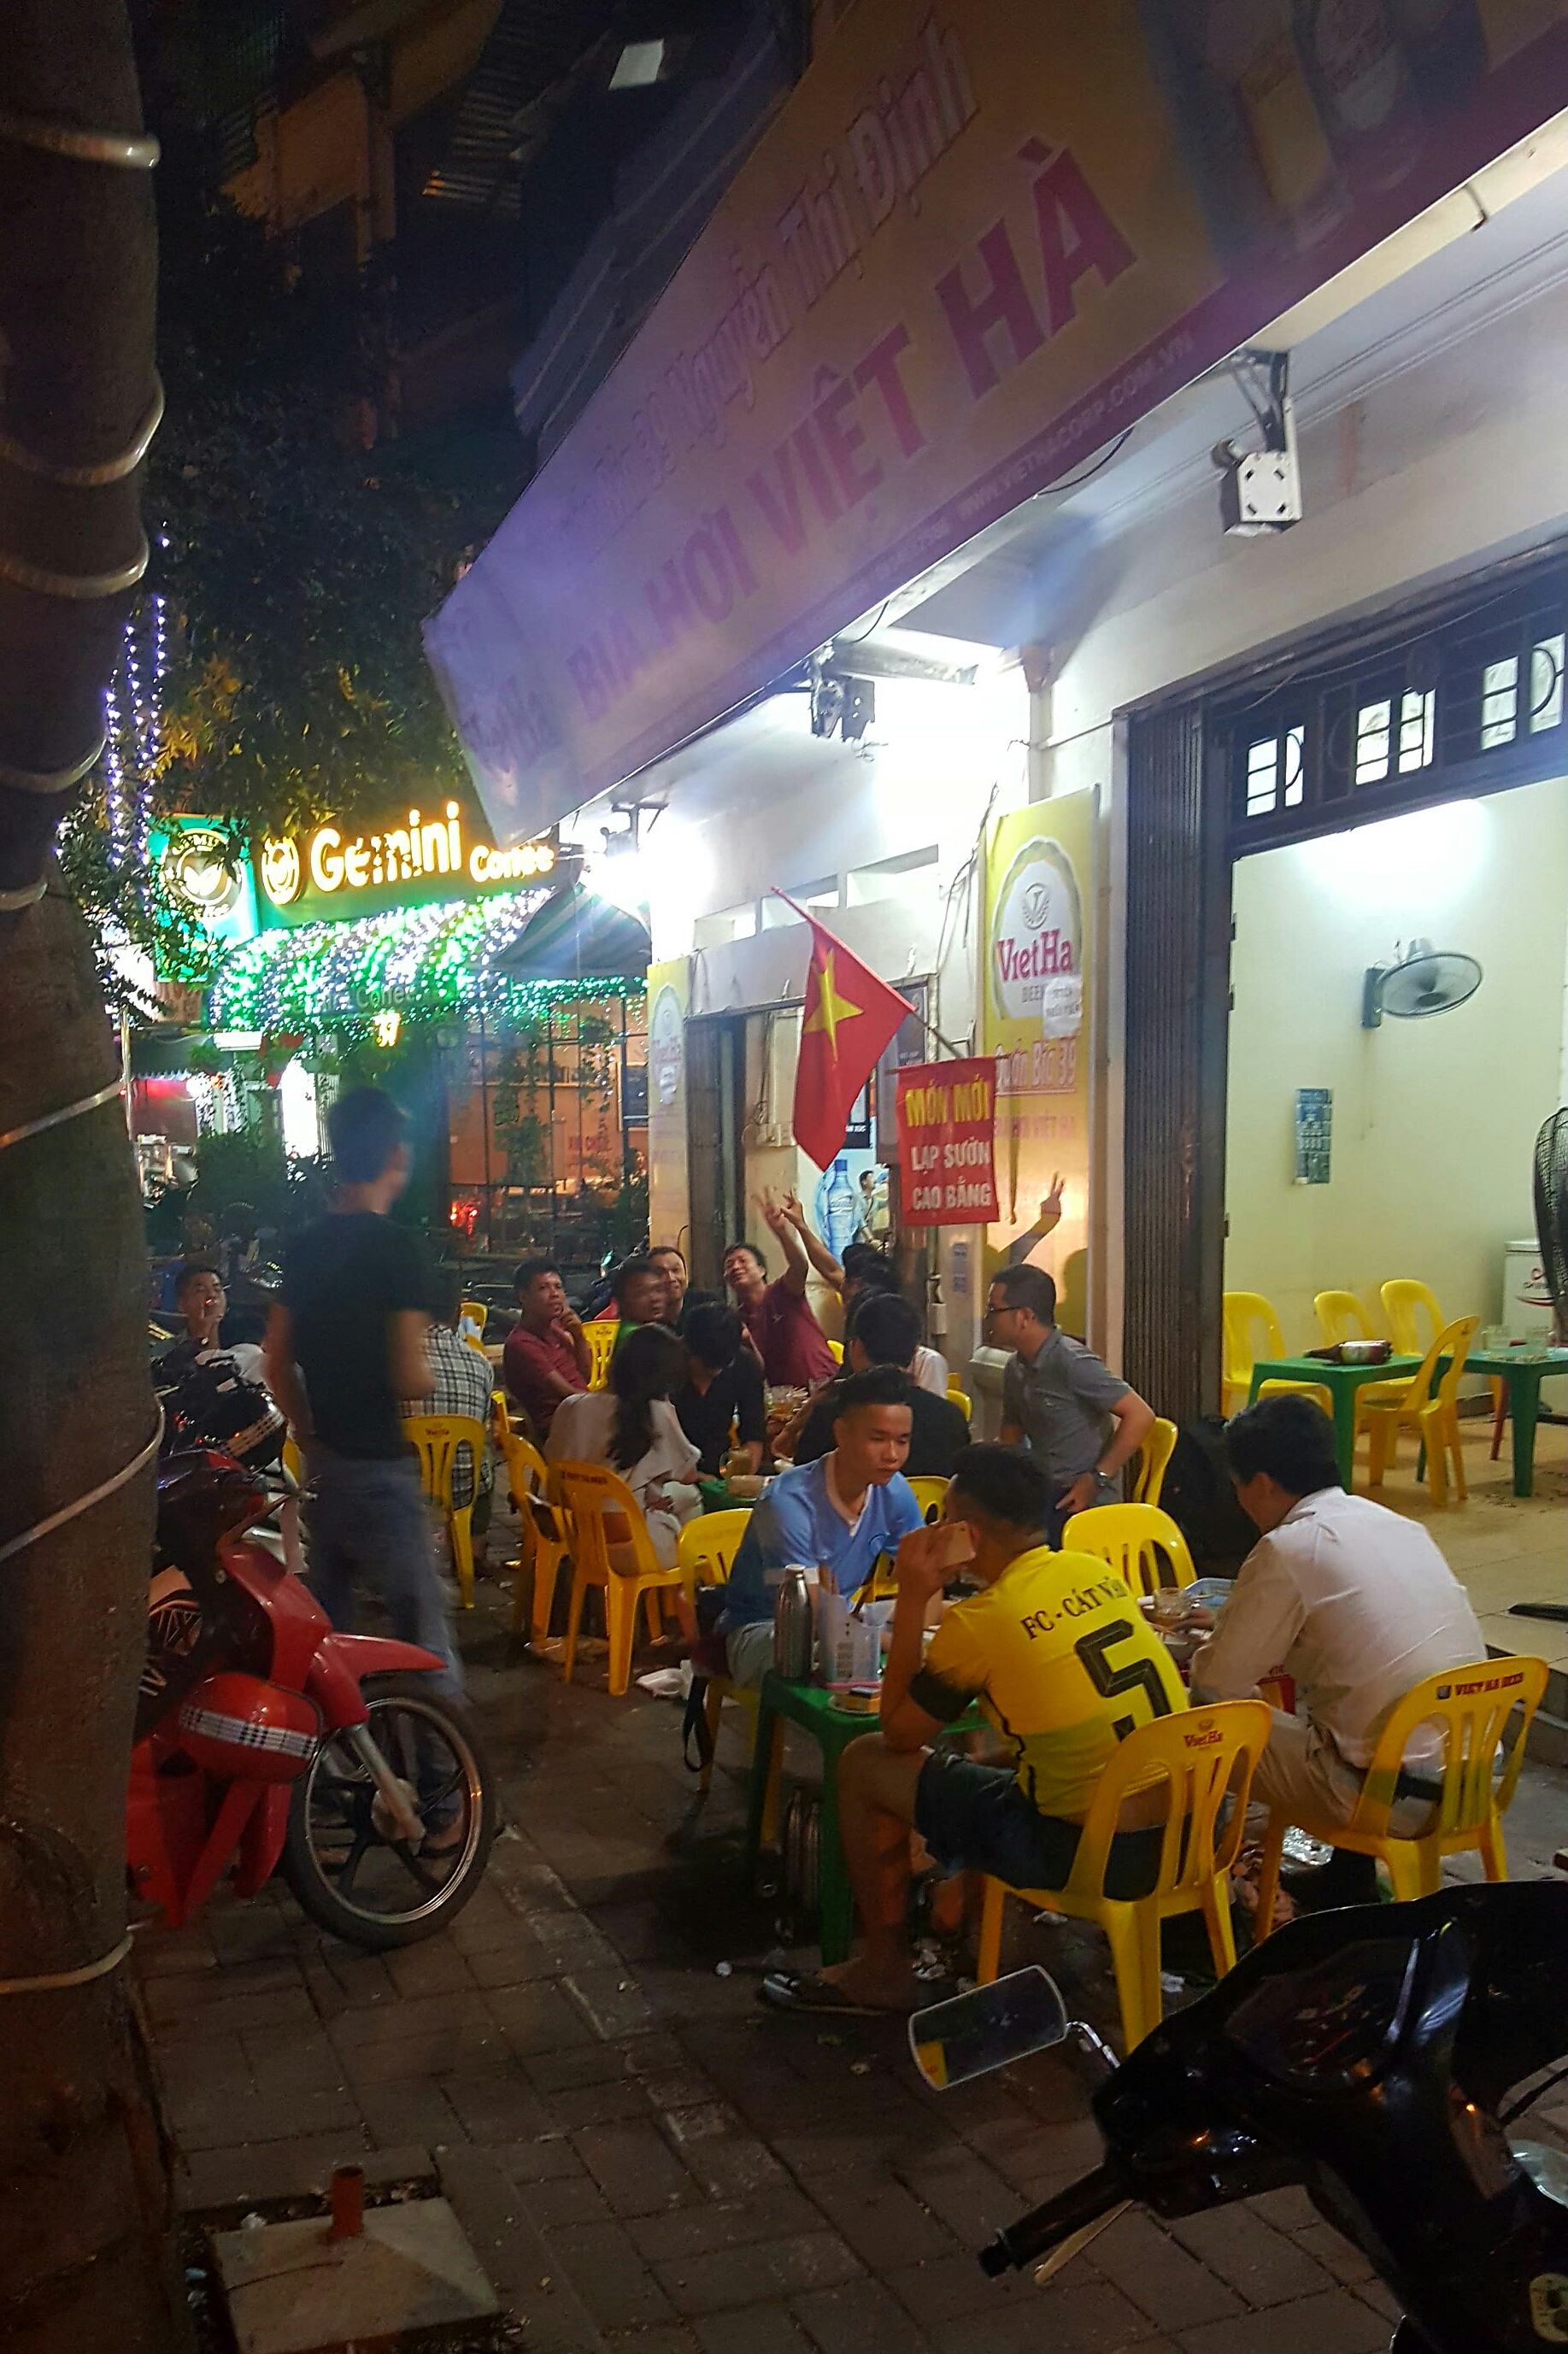 Locals enjoying beer and food at a beer hoi bar in Hanoi, Vietnam